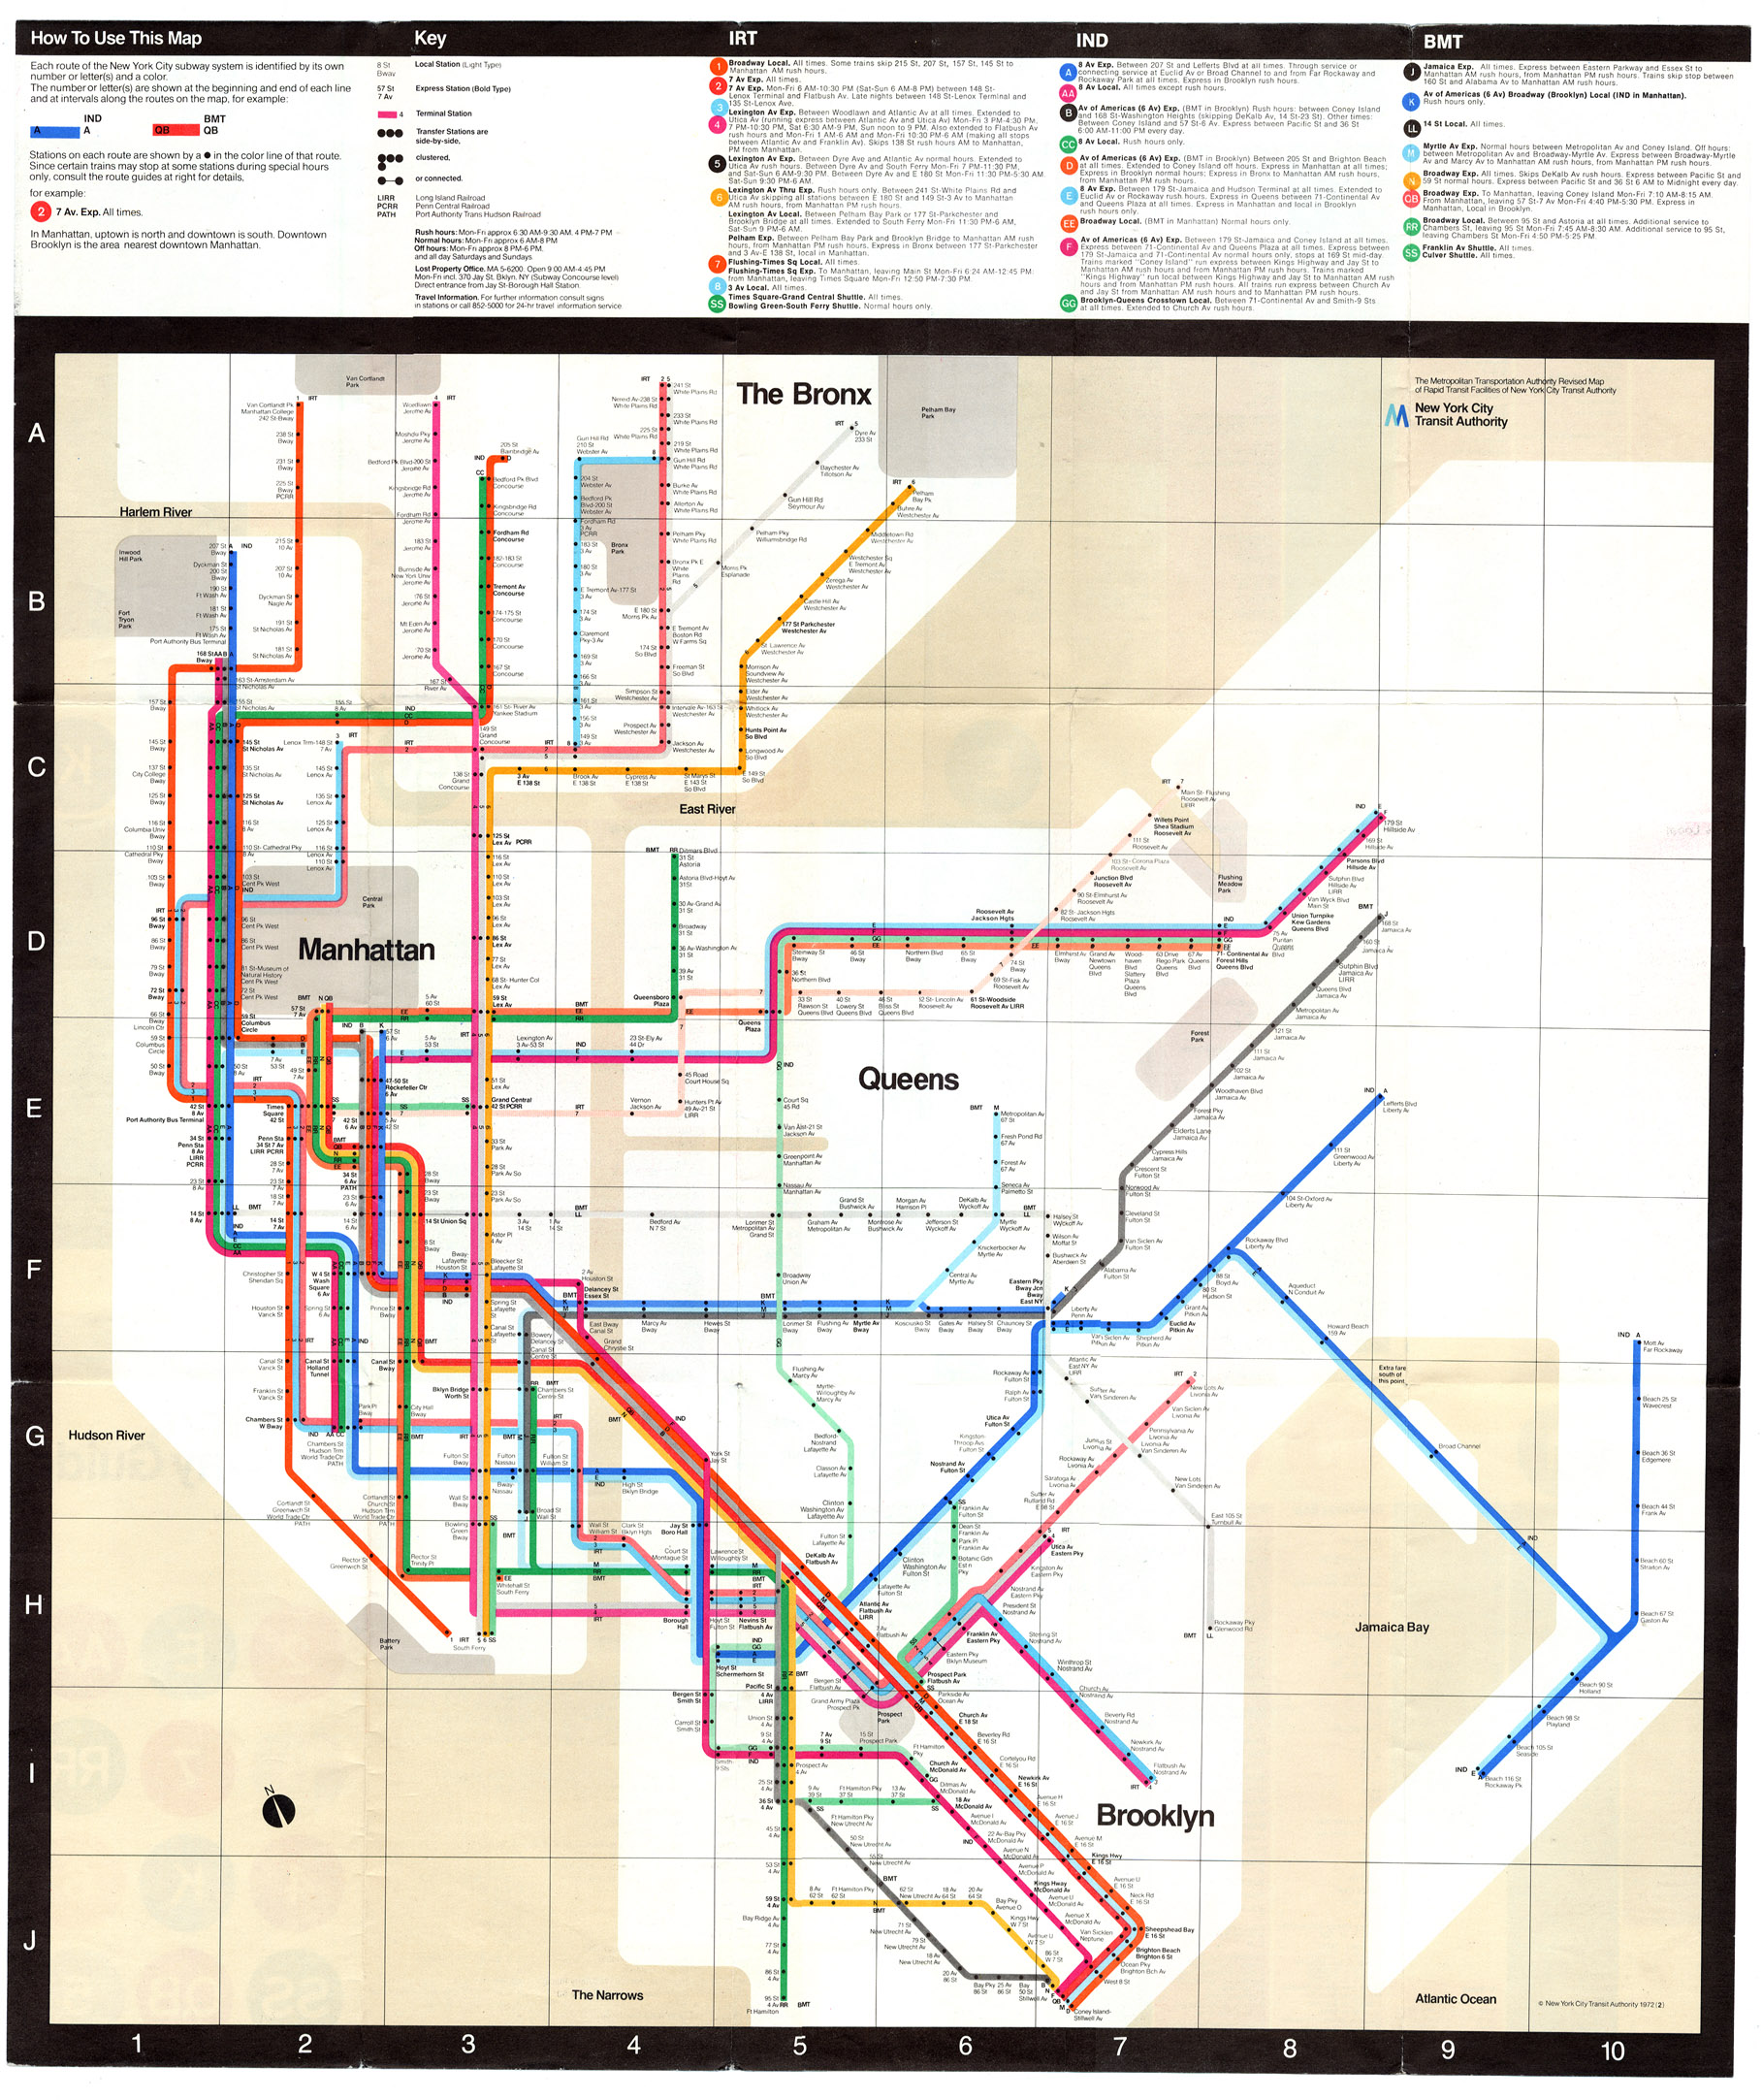 1900 Subway Map New York City.Www Nycsubway Org